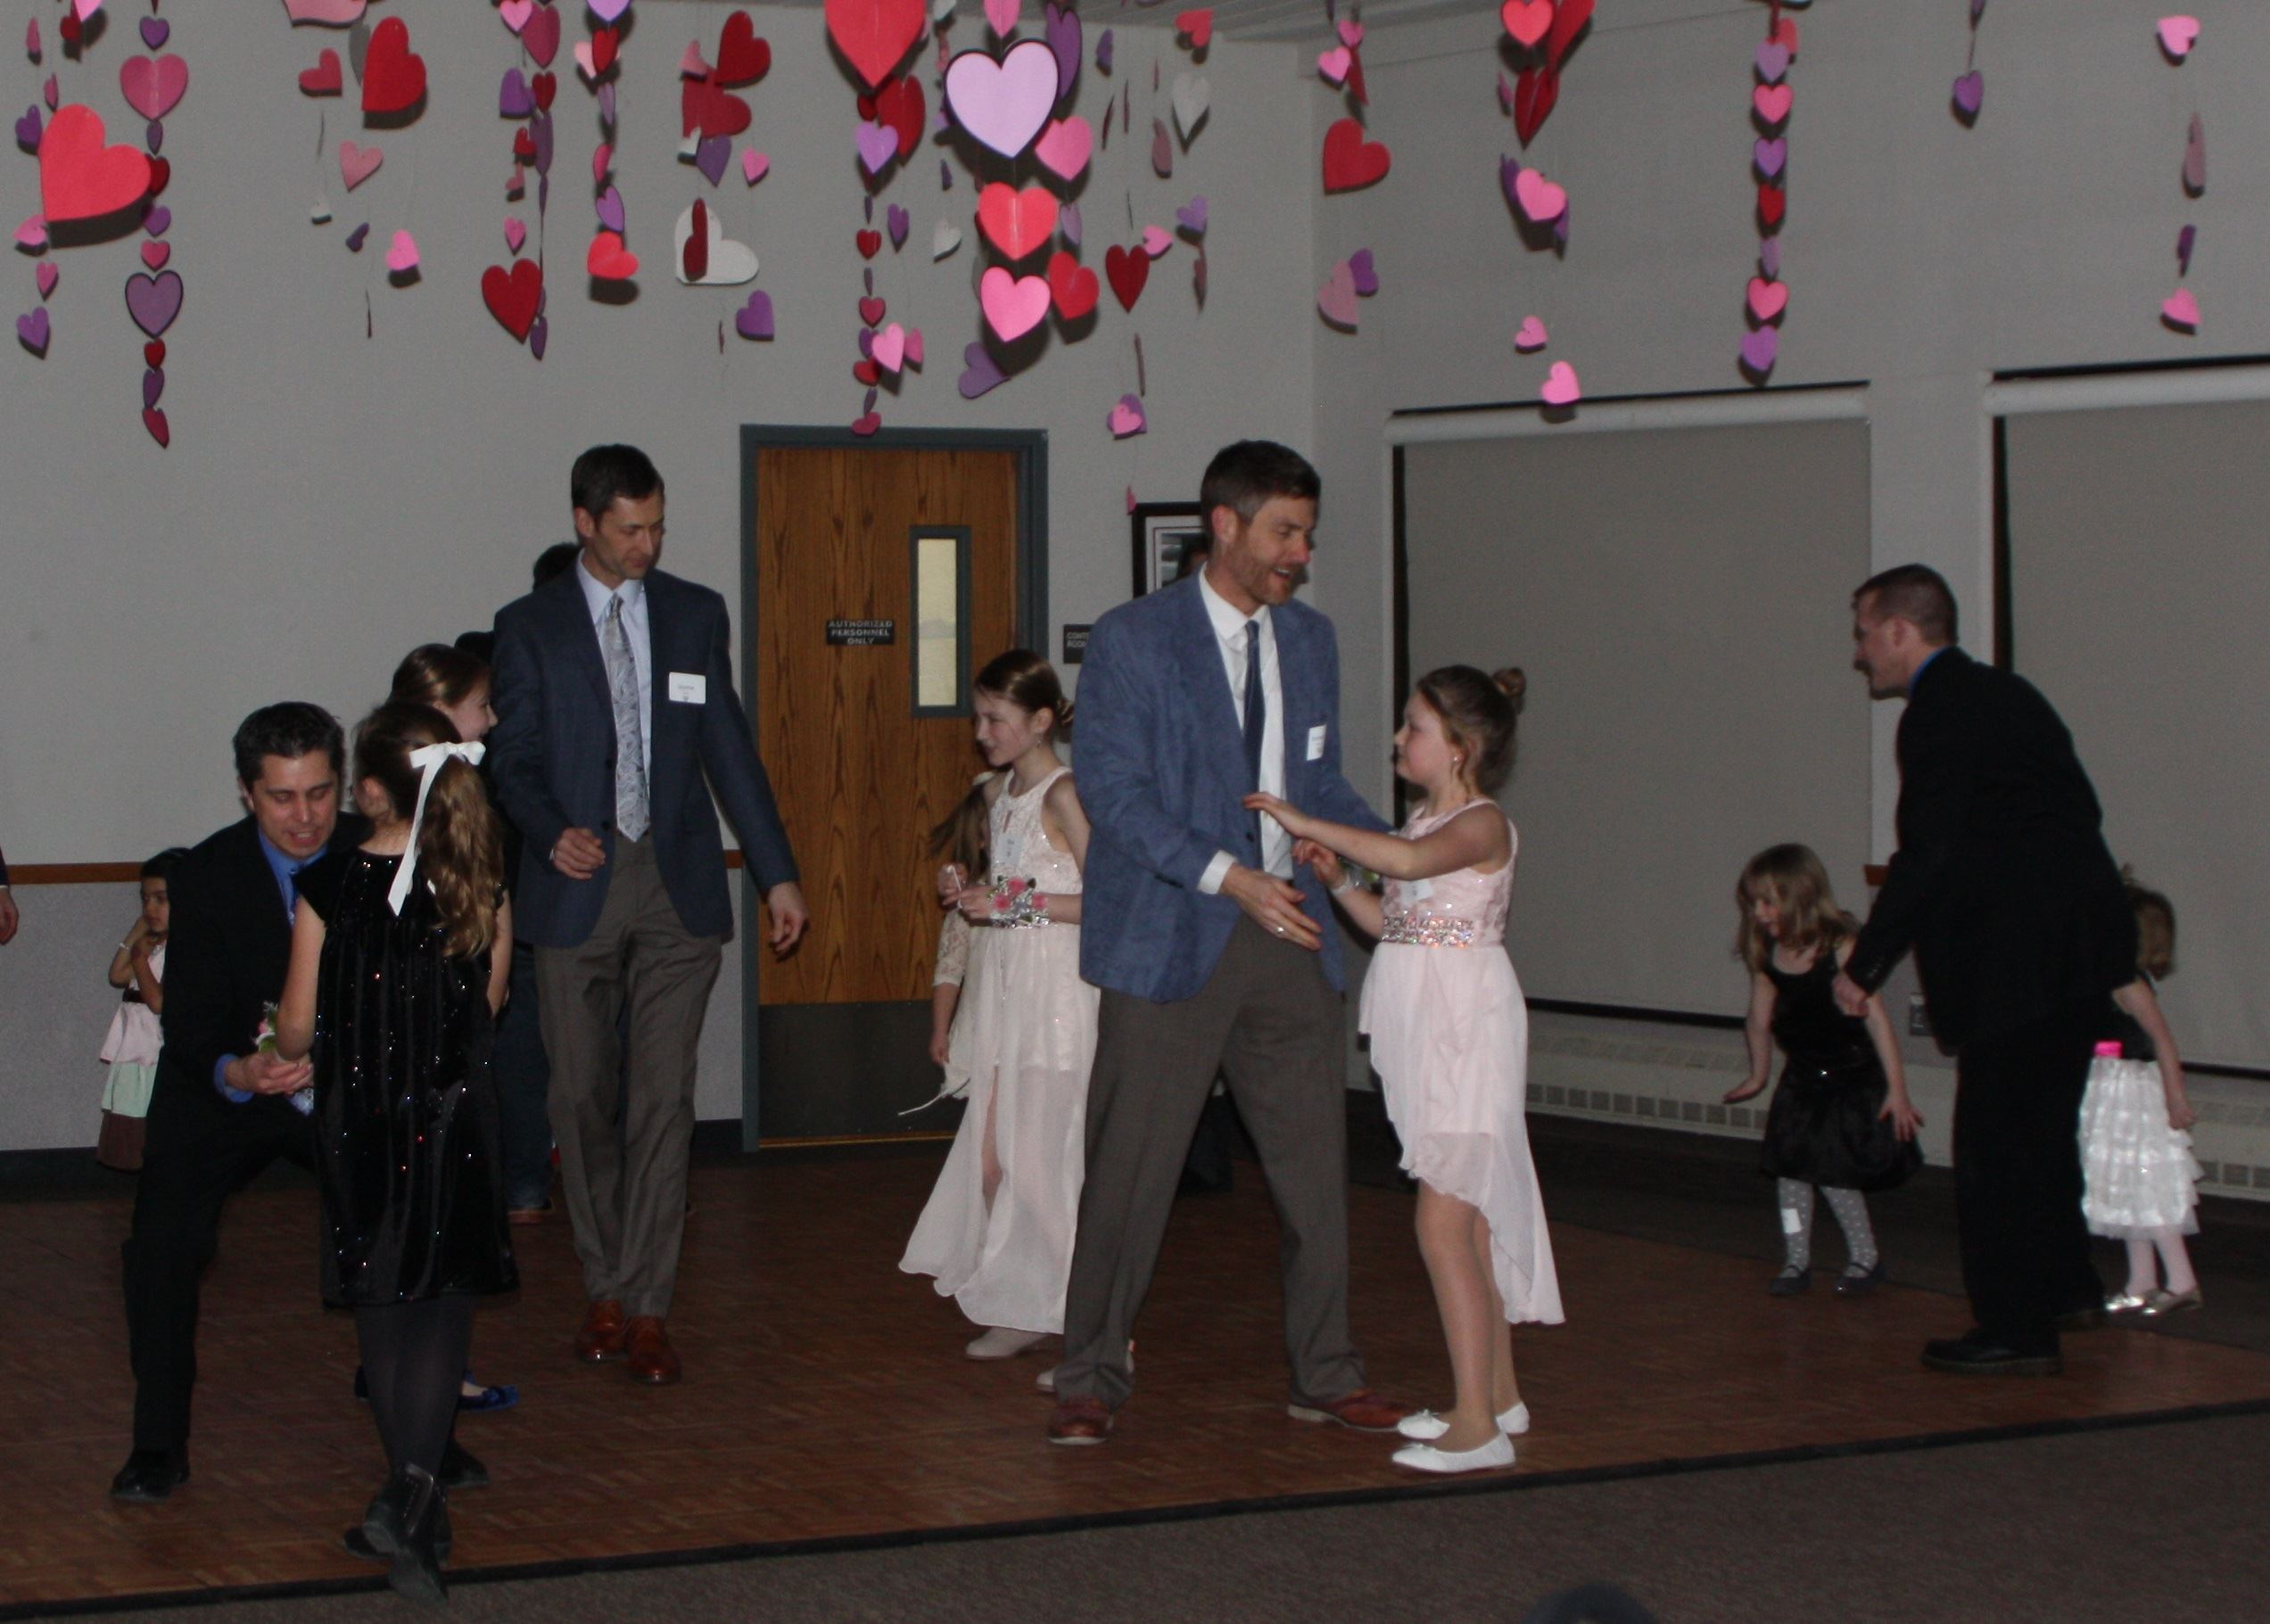 Dancing dads and daughters